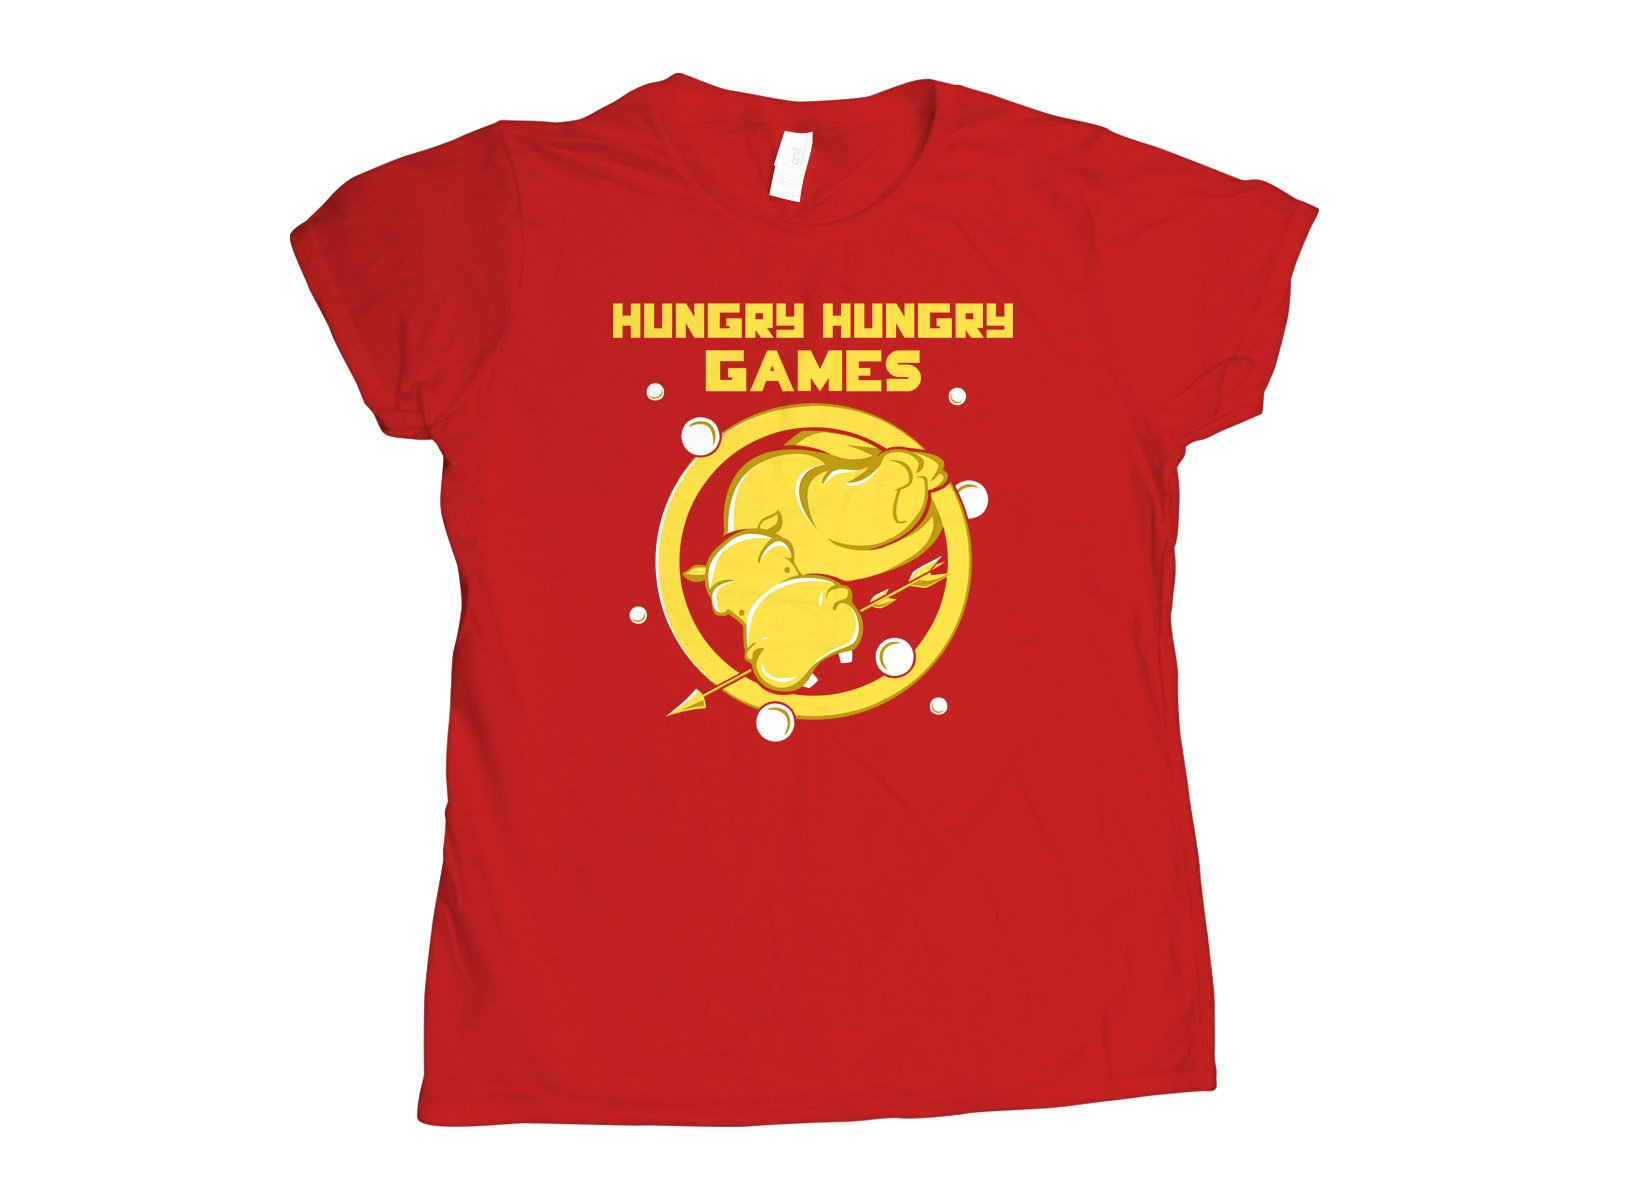 Hungry Hungry Games on Womens T-Shirt